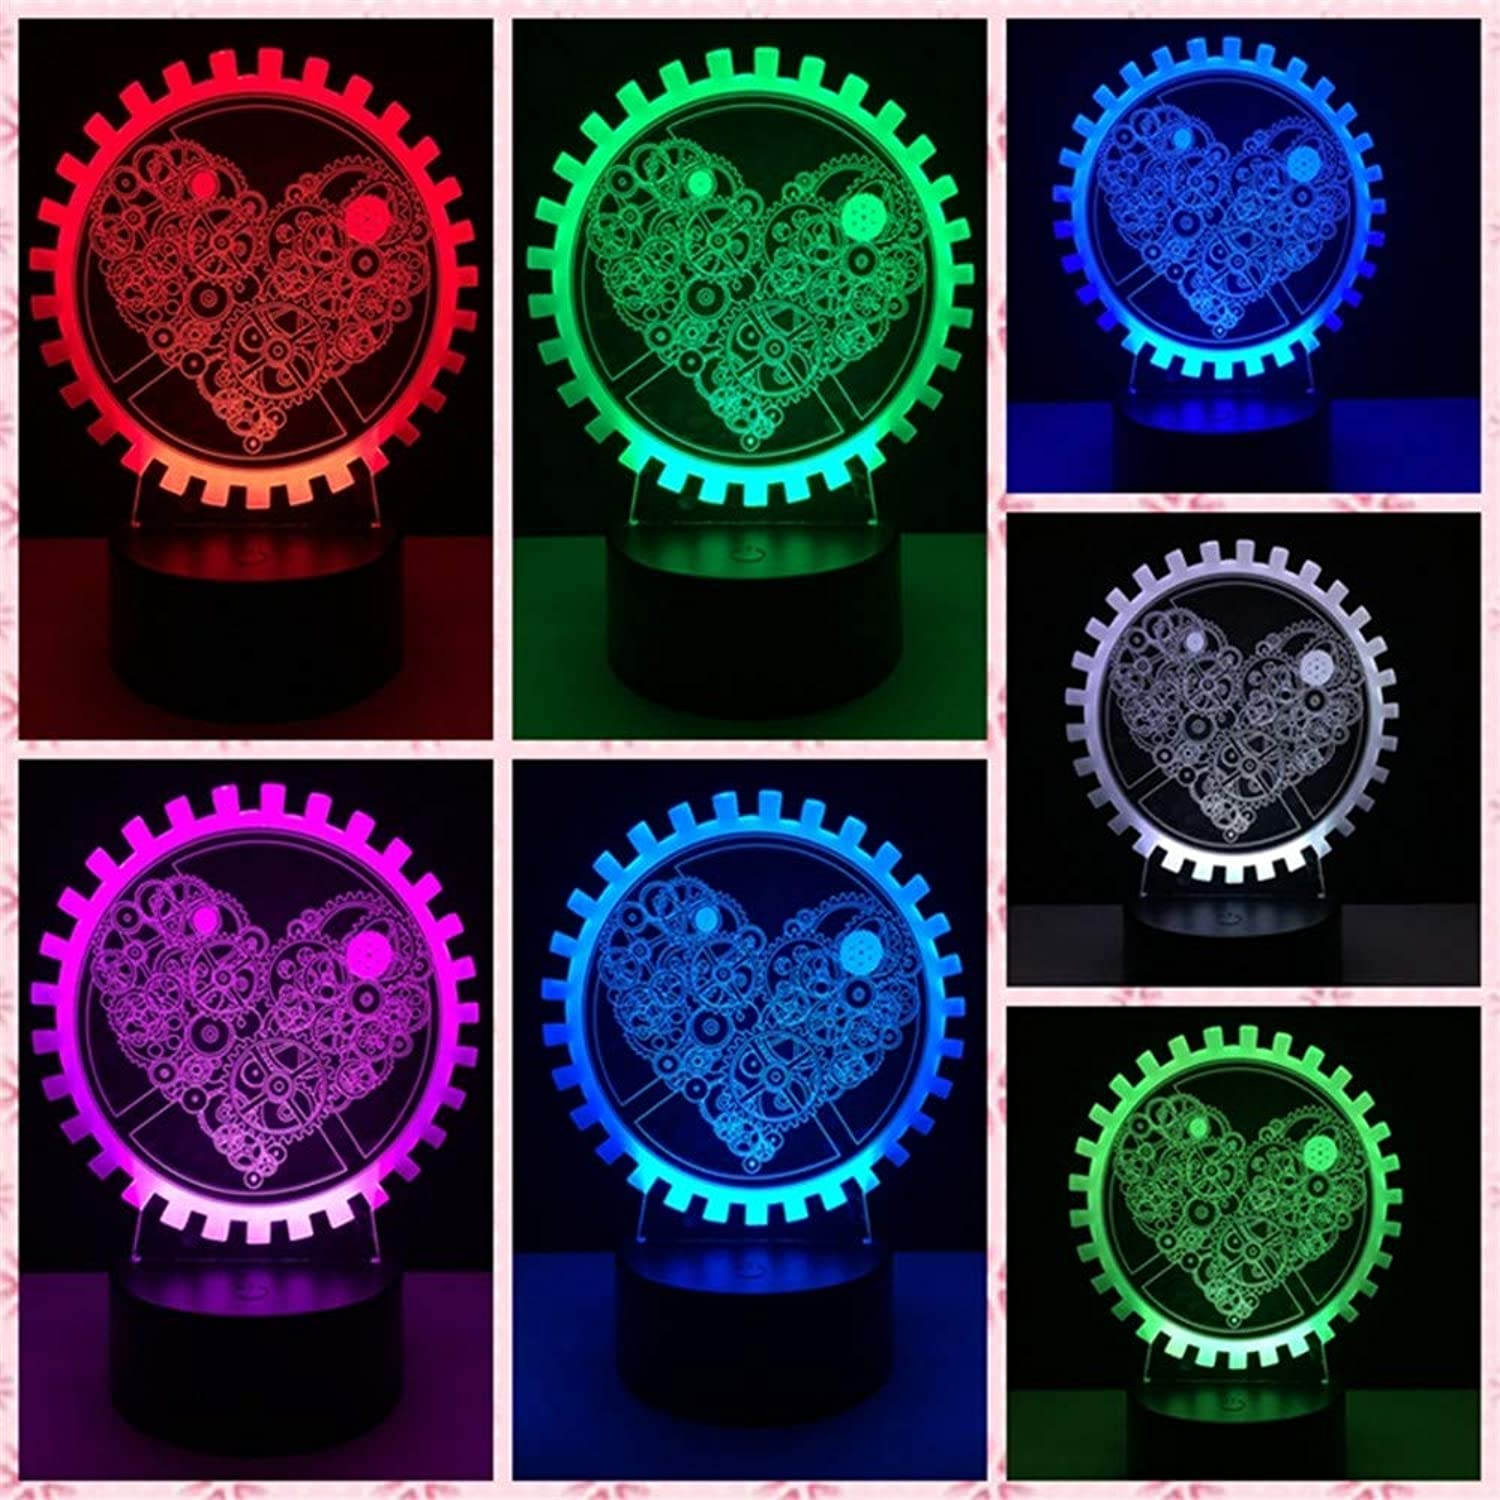 RTFC Night Light USB Led Light Heart Shape Gear 3D Romantic Decoration colorful Luminous Girlfriend Gift